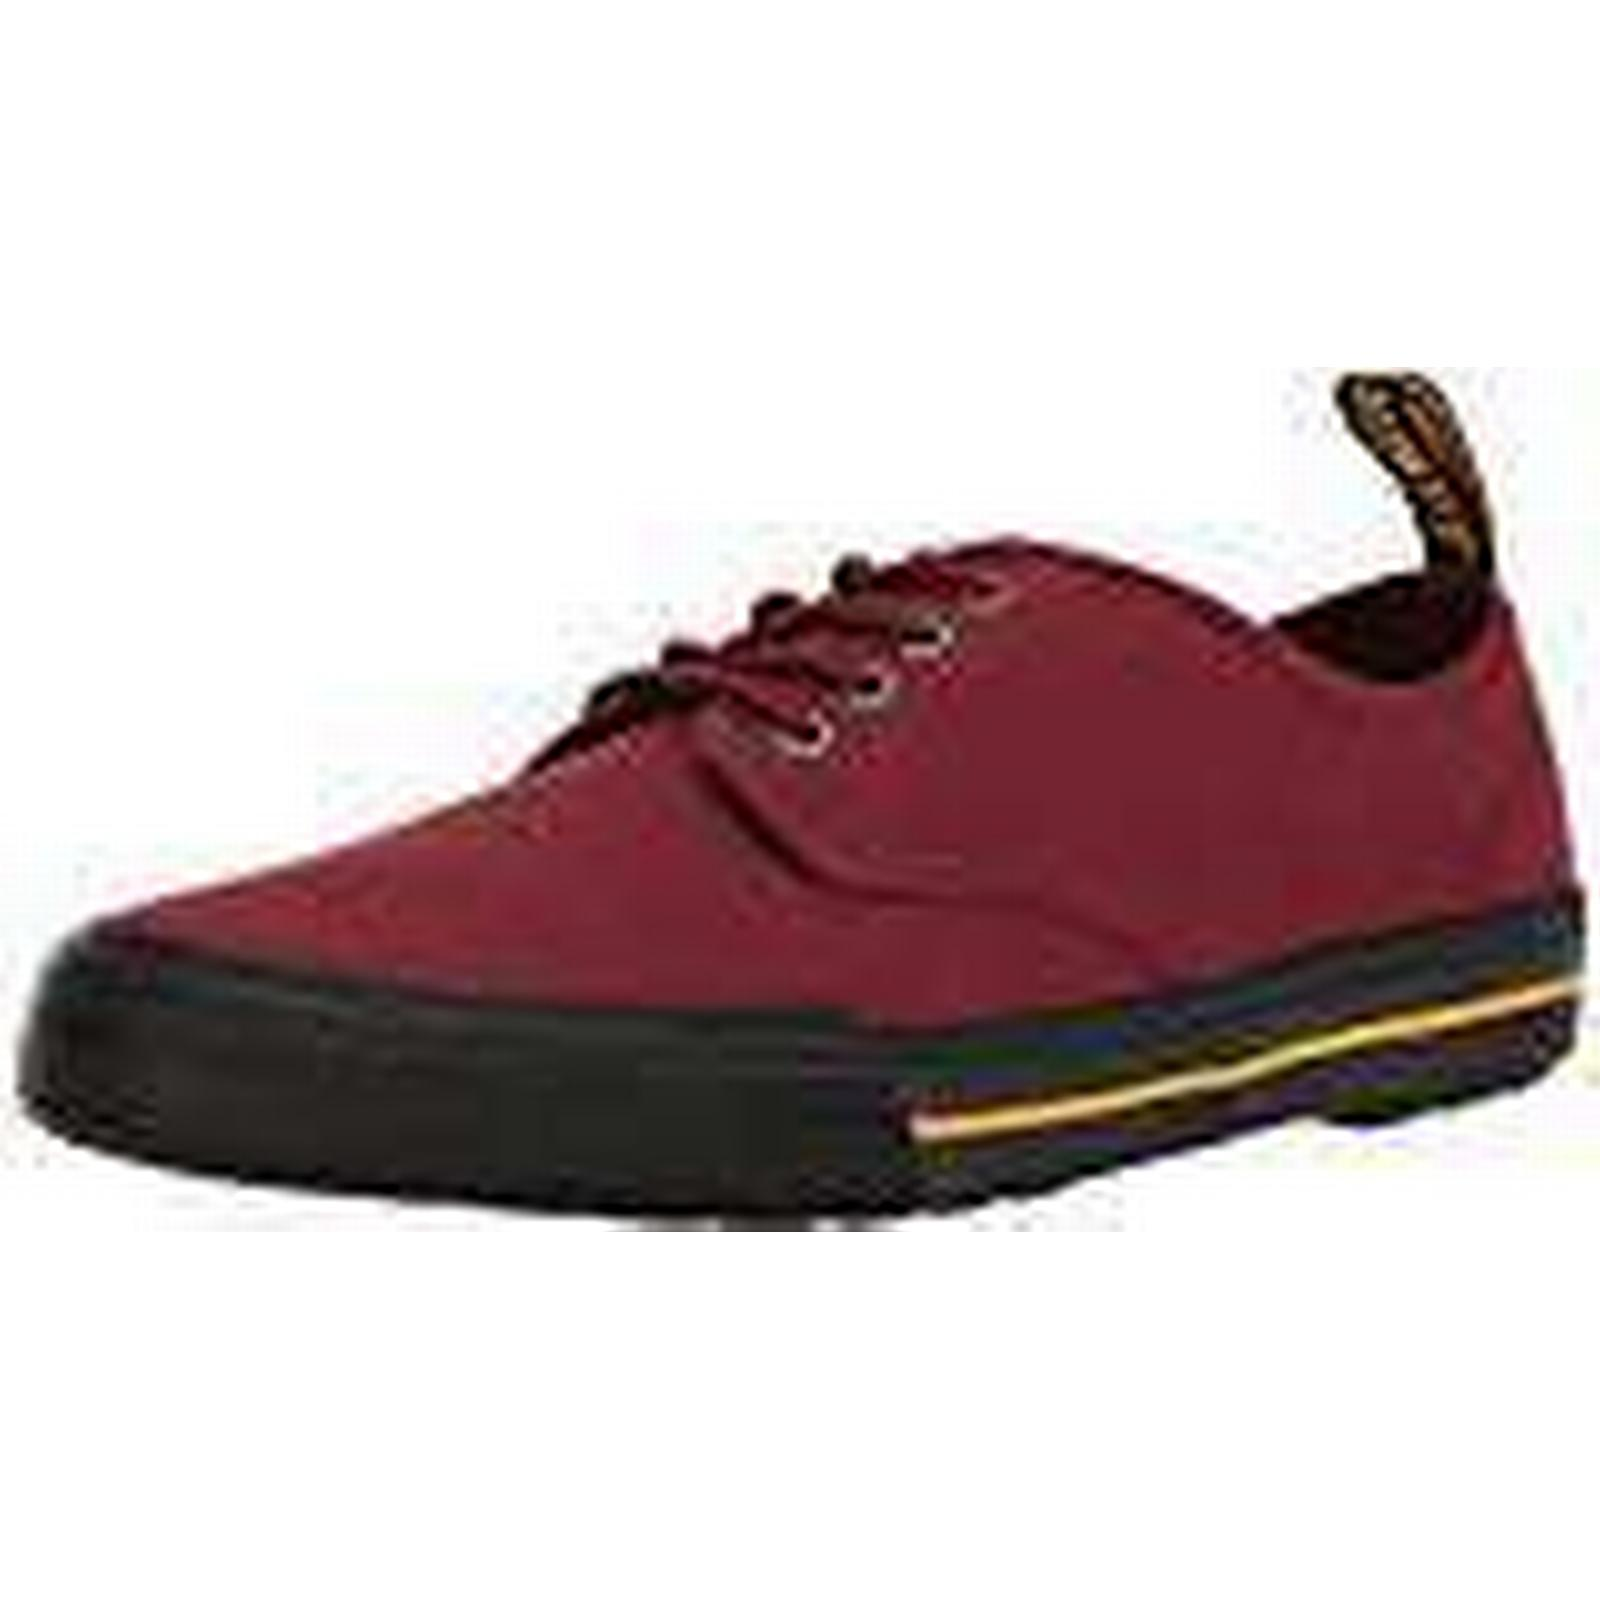 Dr. Trainers, Martens Unisex Adults' Pressler Trainers, Dr. (Cherry Red 600), 9 (43 EU) 4f4ff0